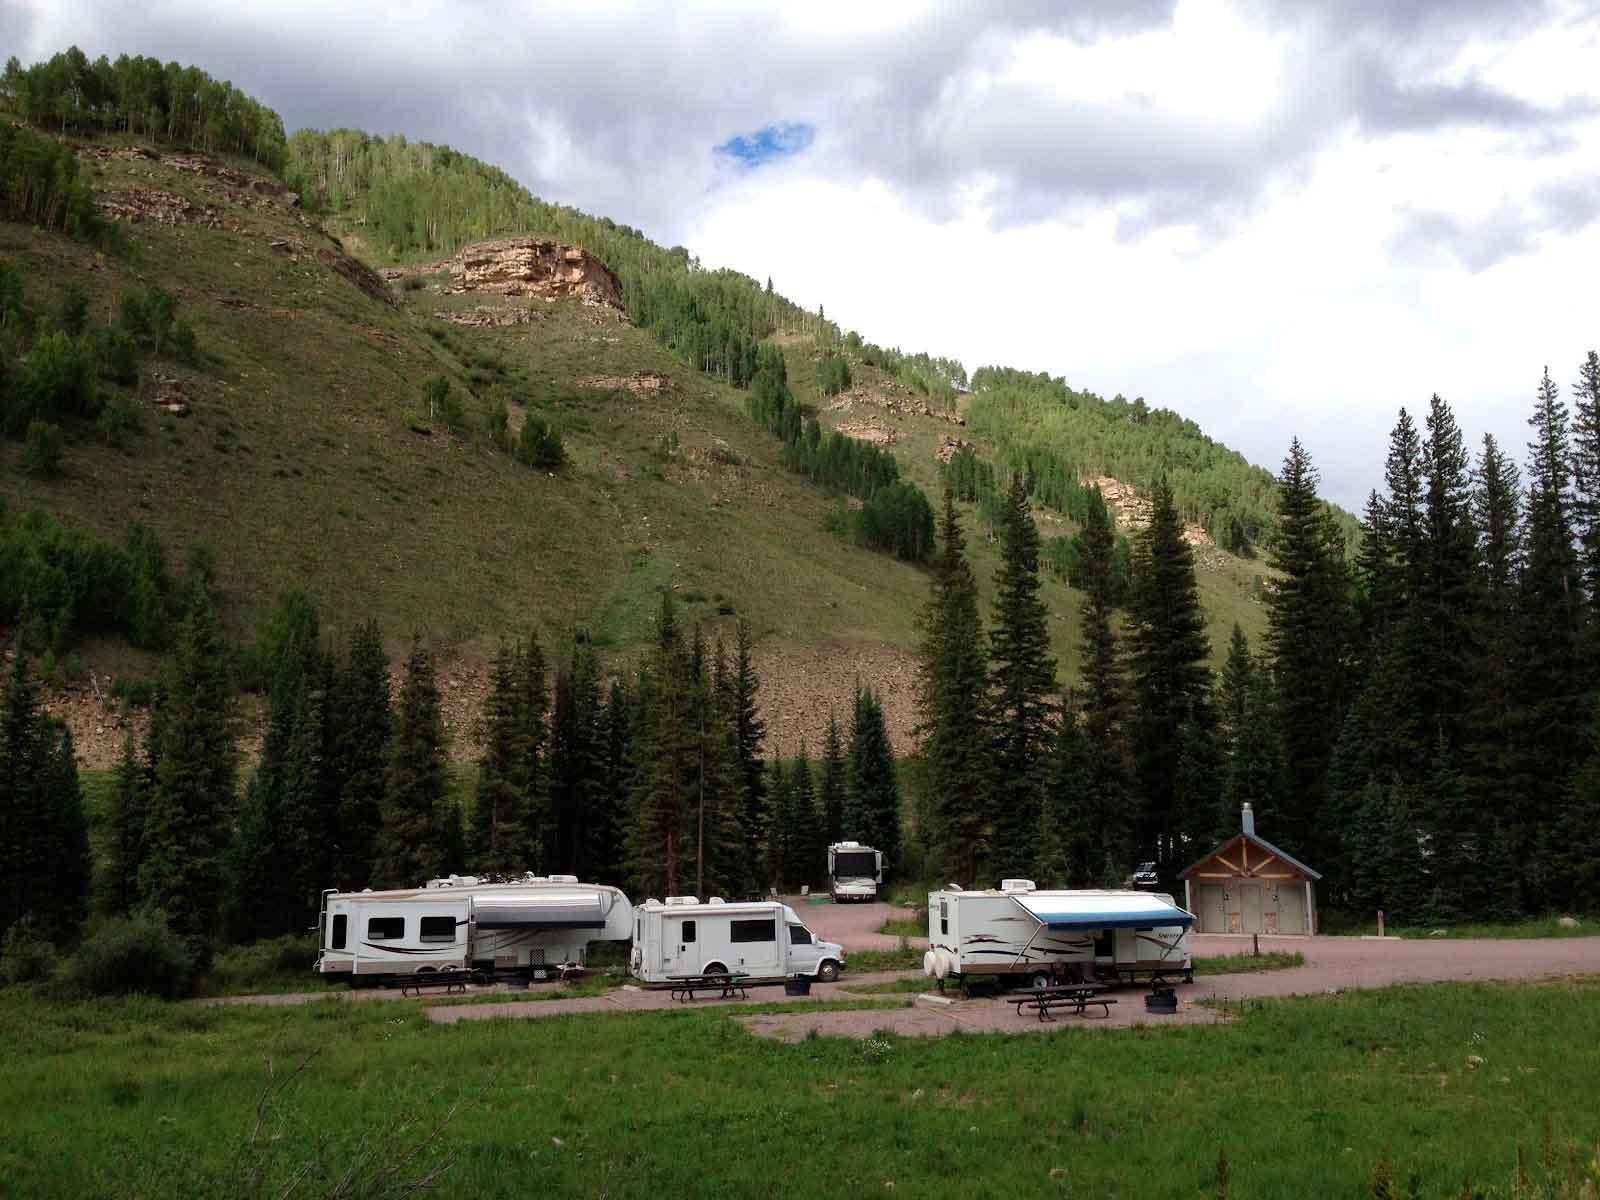 RVs parked in Recreation Area